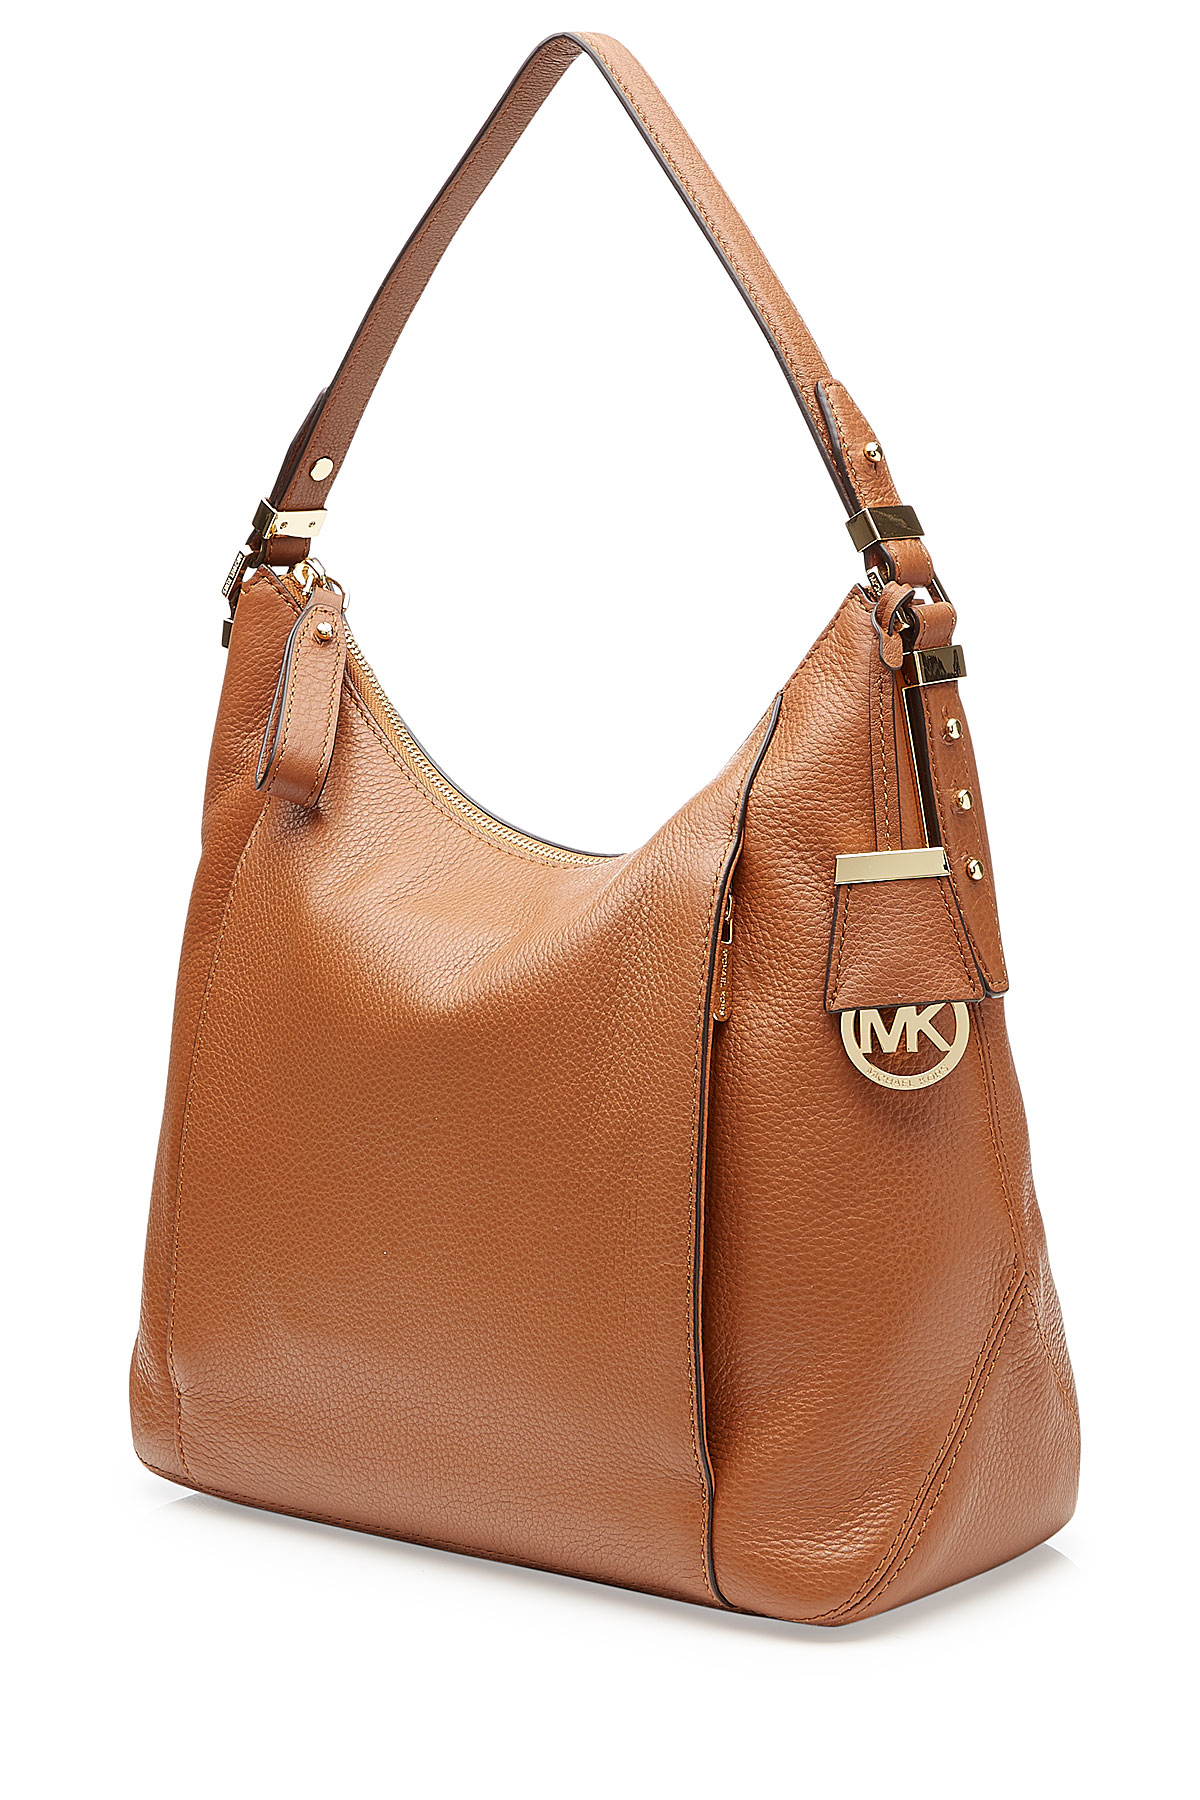 michael michael kors bowery large hobo leather tote brown in brown lyst. Black Bedroom Furniture Sets. Home Design Ideas